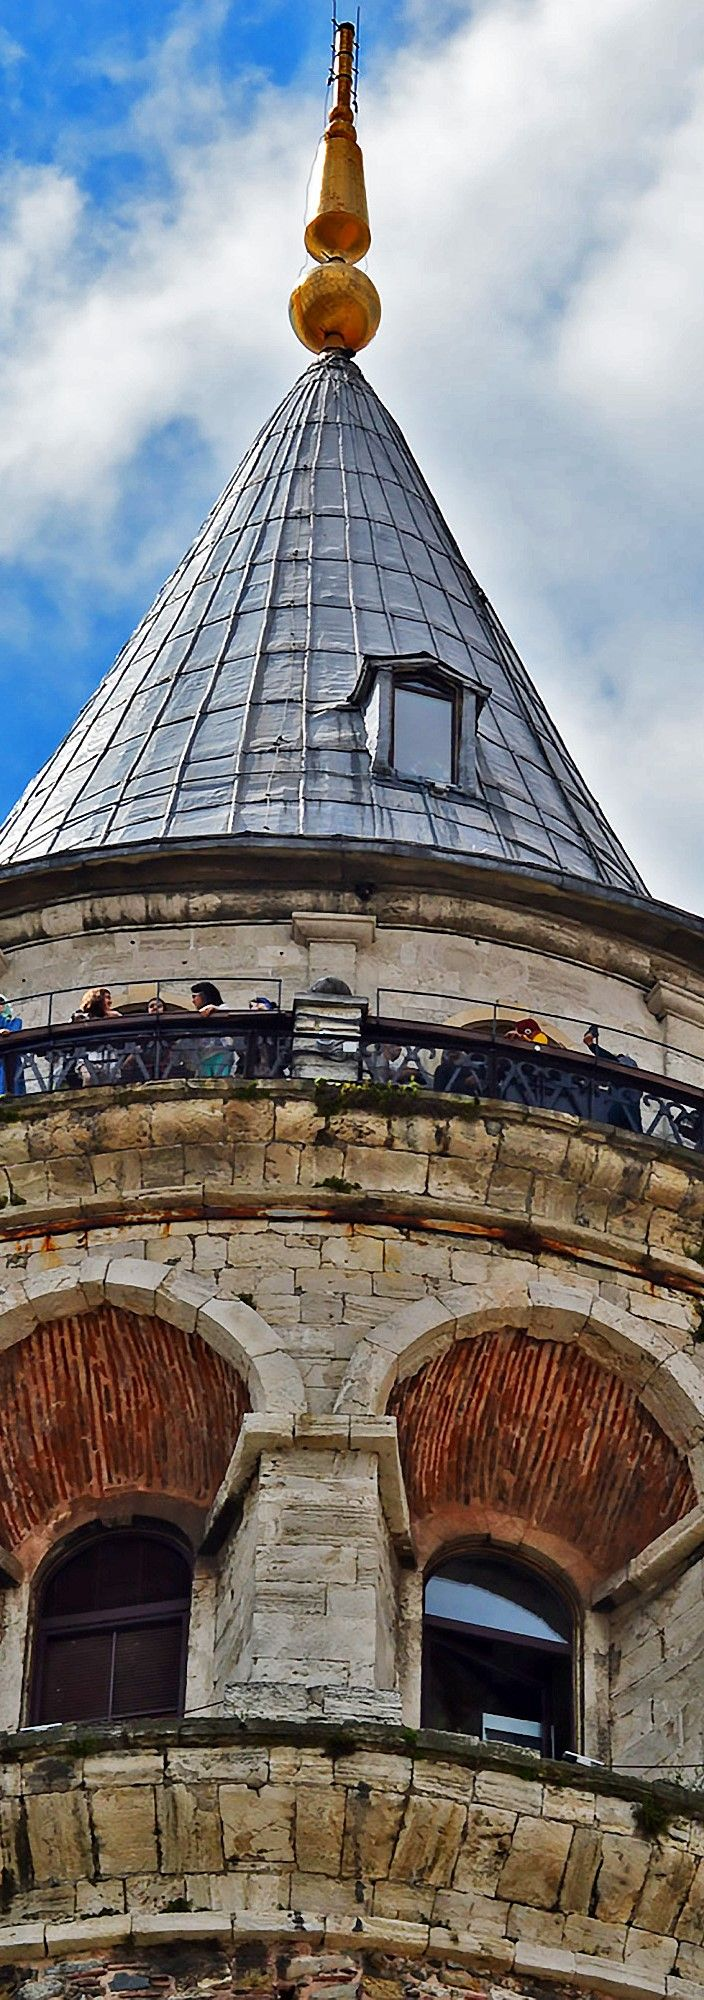 The Galata Tower In Istanbul - #photo #photooftheday #photos #photochallenge #photographer